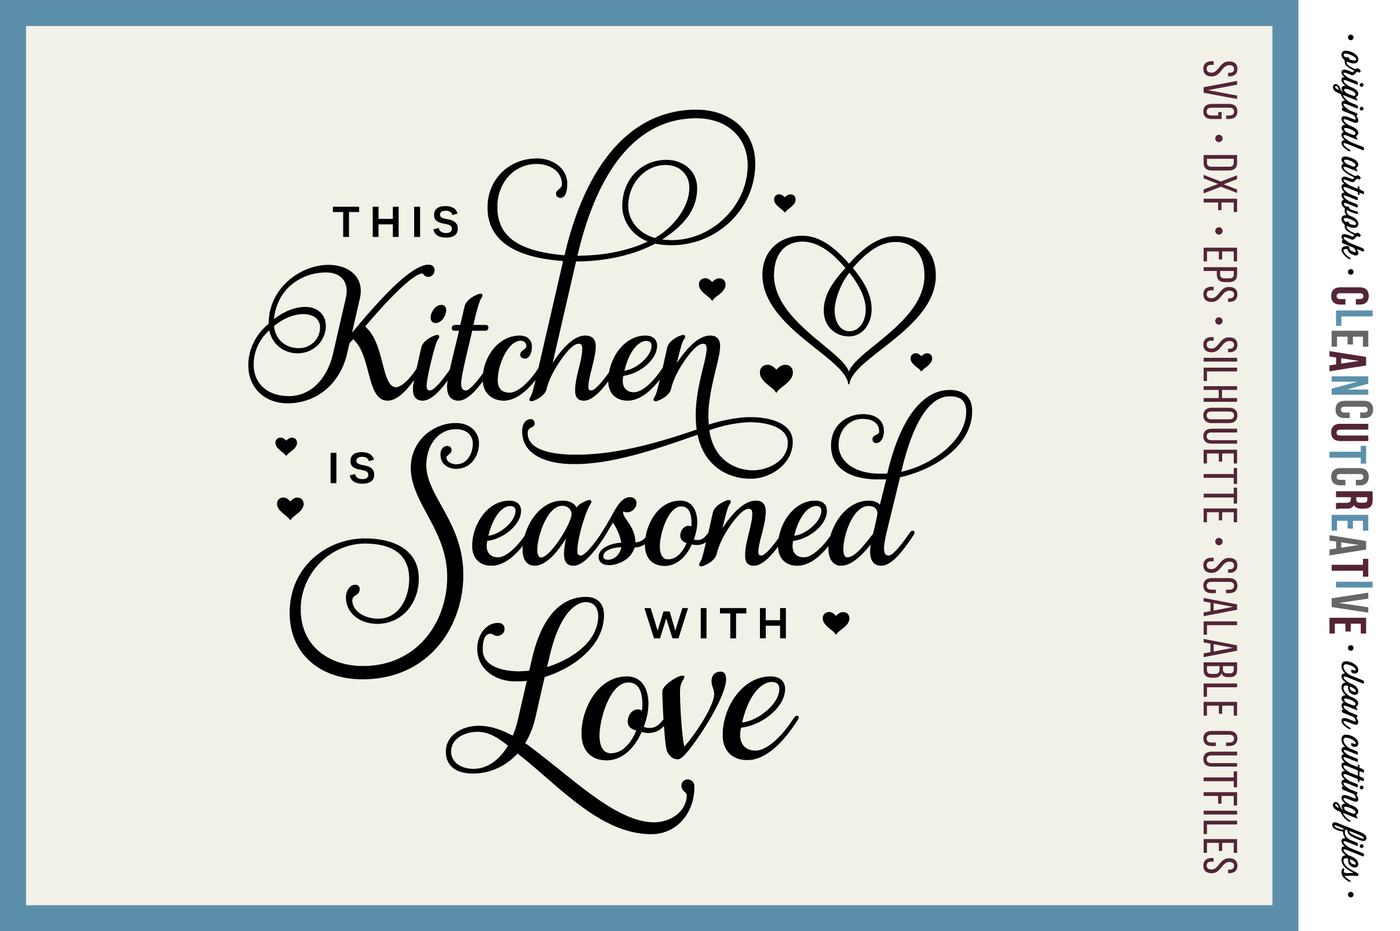 This Kitchen Is Seasoned With Love Svg Dxf Eps Png Cricut Silhouette Clean Cutting Files By Cleancutcreative Thehungryjpeg Com